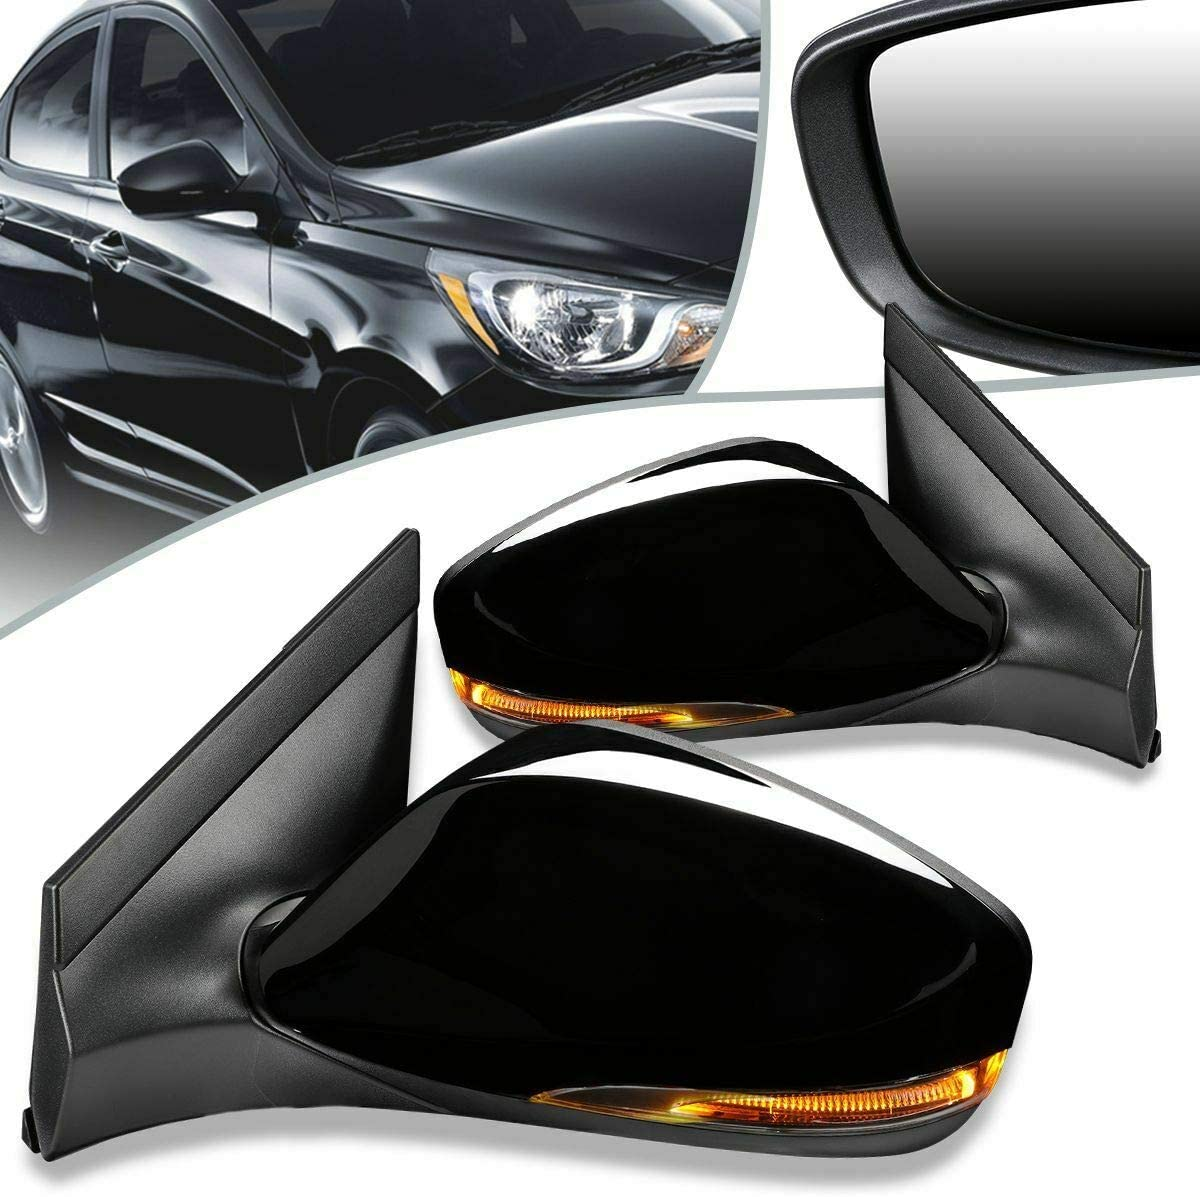 GUJOA Customized Hatchback Inventory outlet cleanup selling sale 1 Pair Door Power Signal Heat Mirror